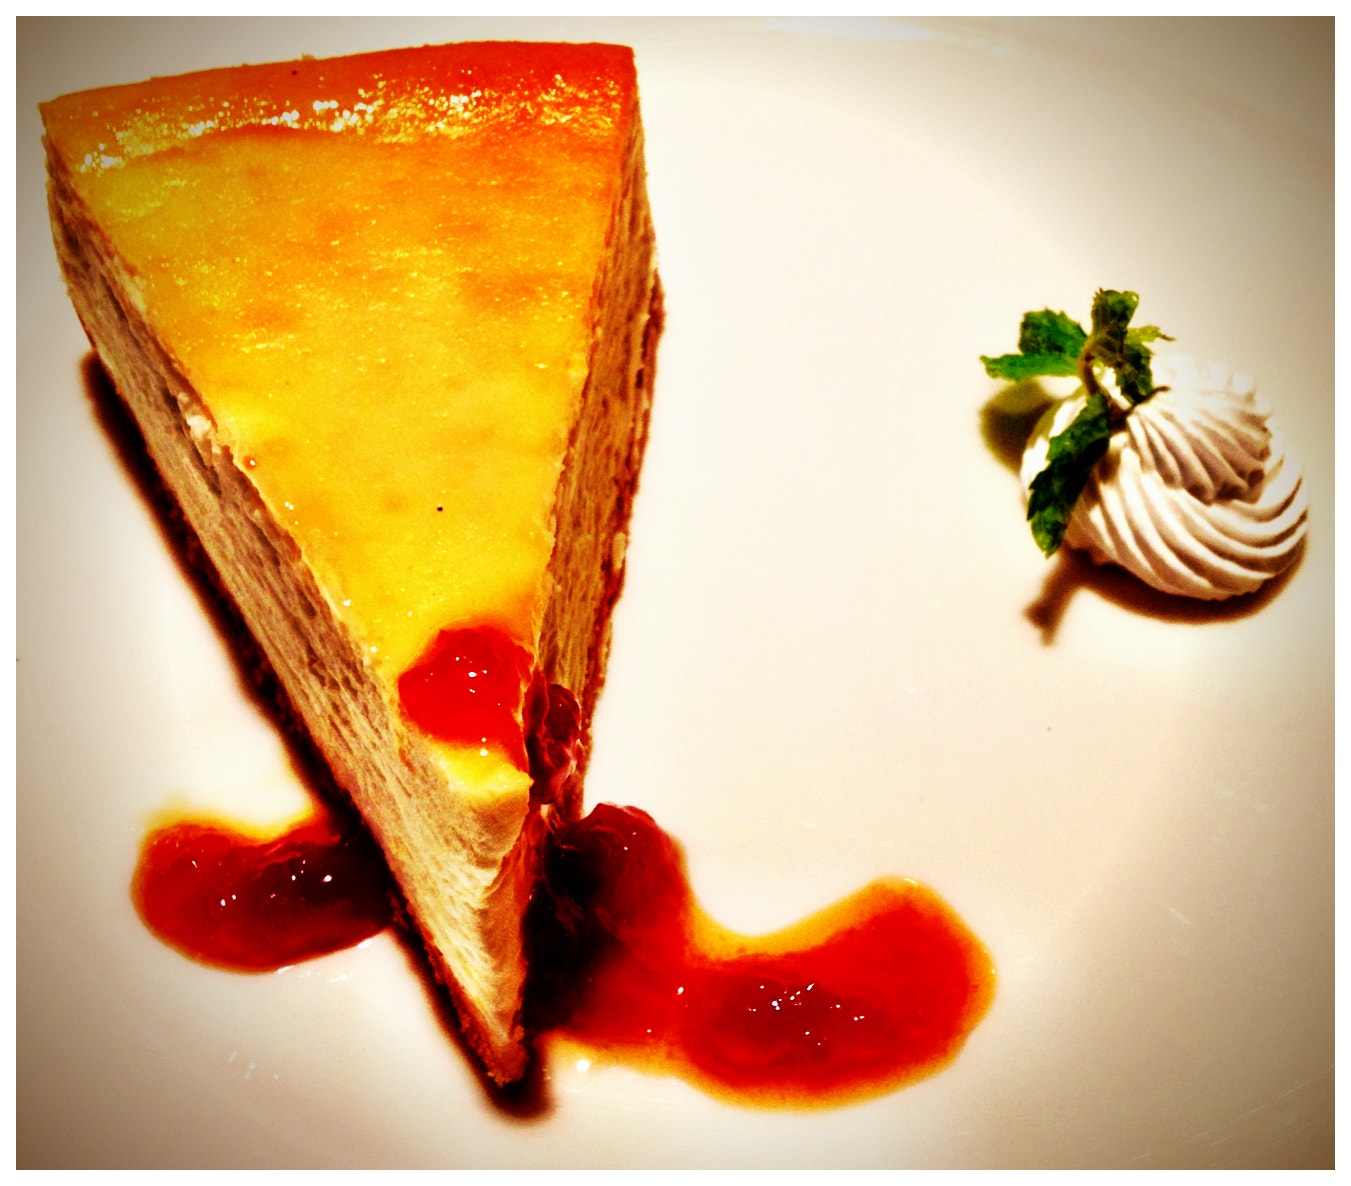 Photograph Orange & White Chocolate Cheese Cake. EPIC!!!! by Gopal Chandanani on 500px